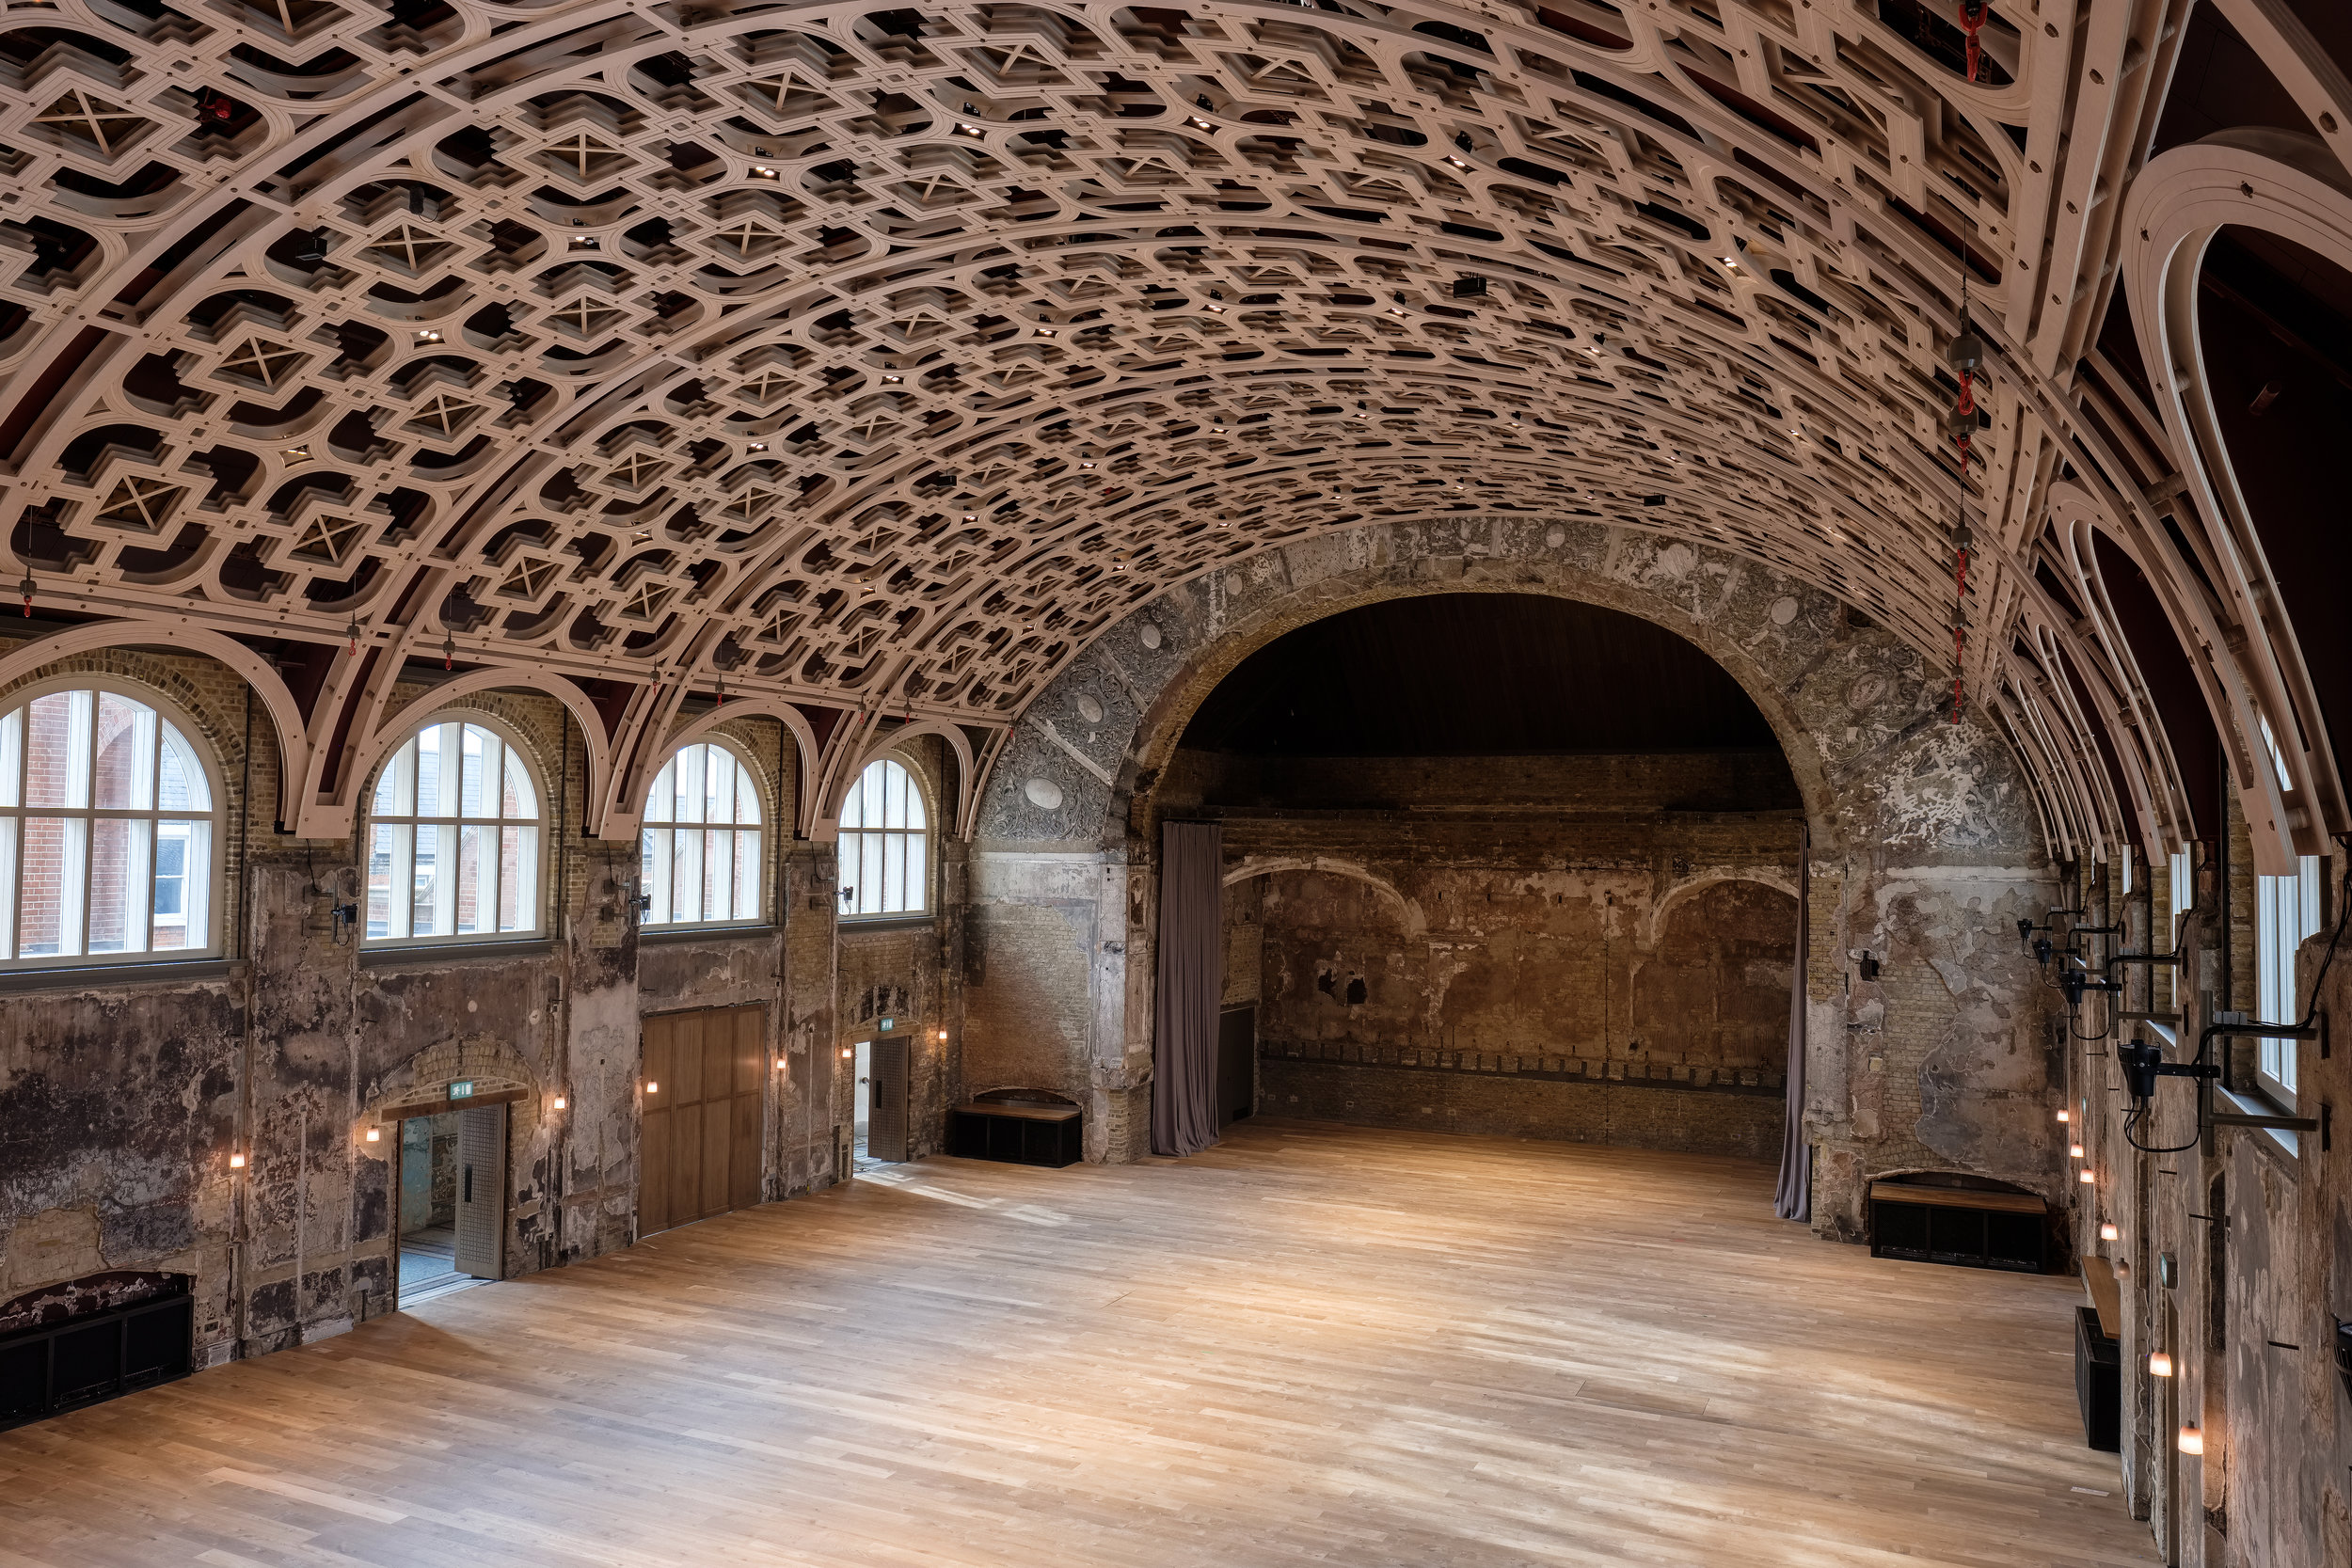 Fred+Howarth+Photography_Battersea+Arts+Centre_05.jpg